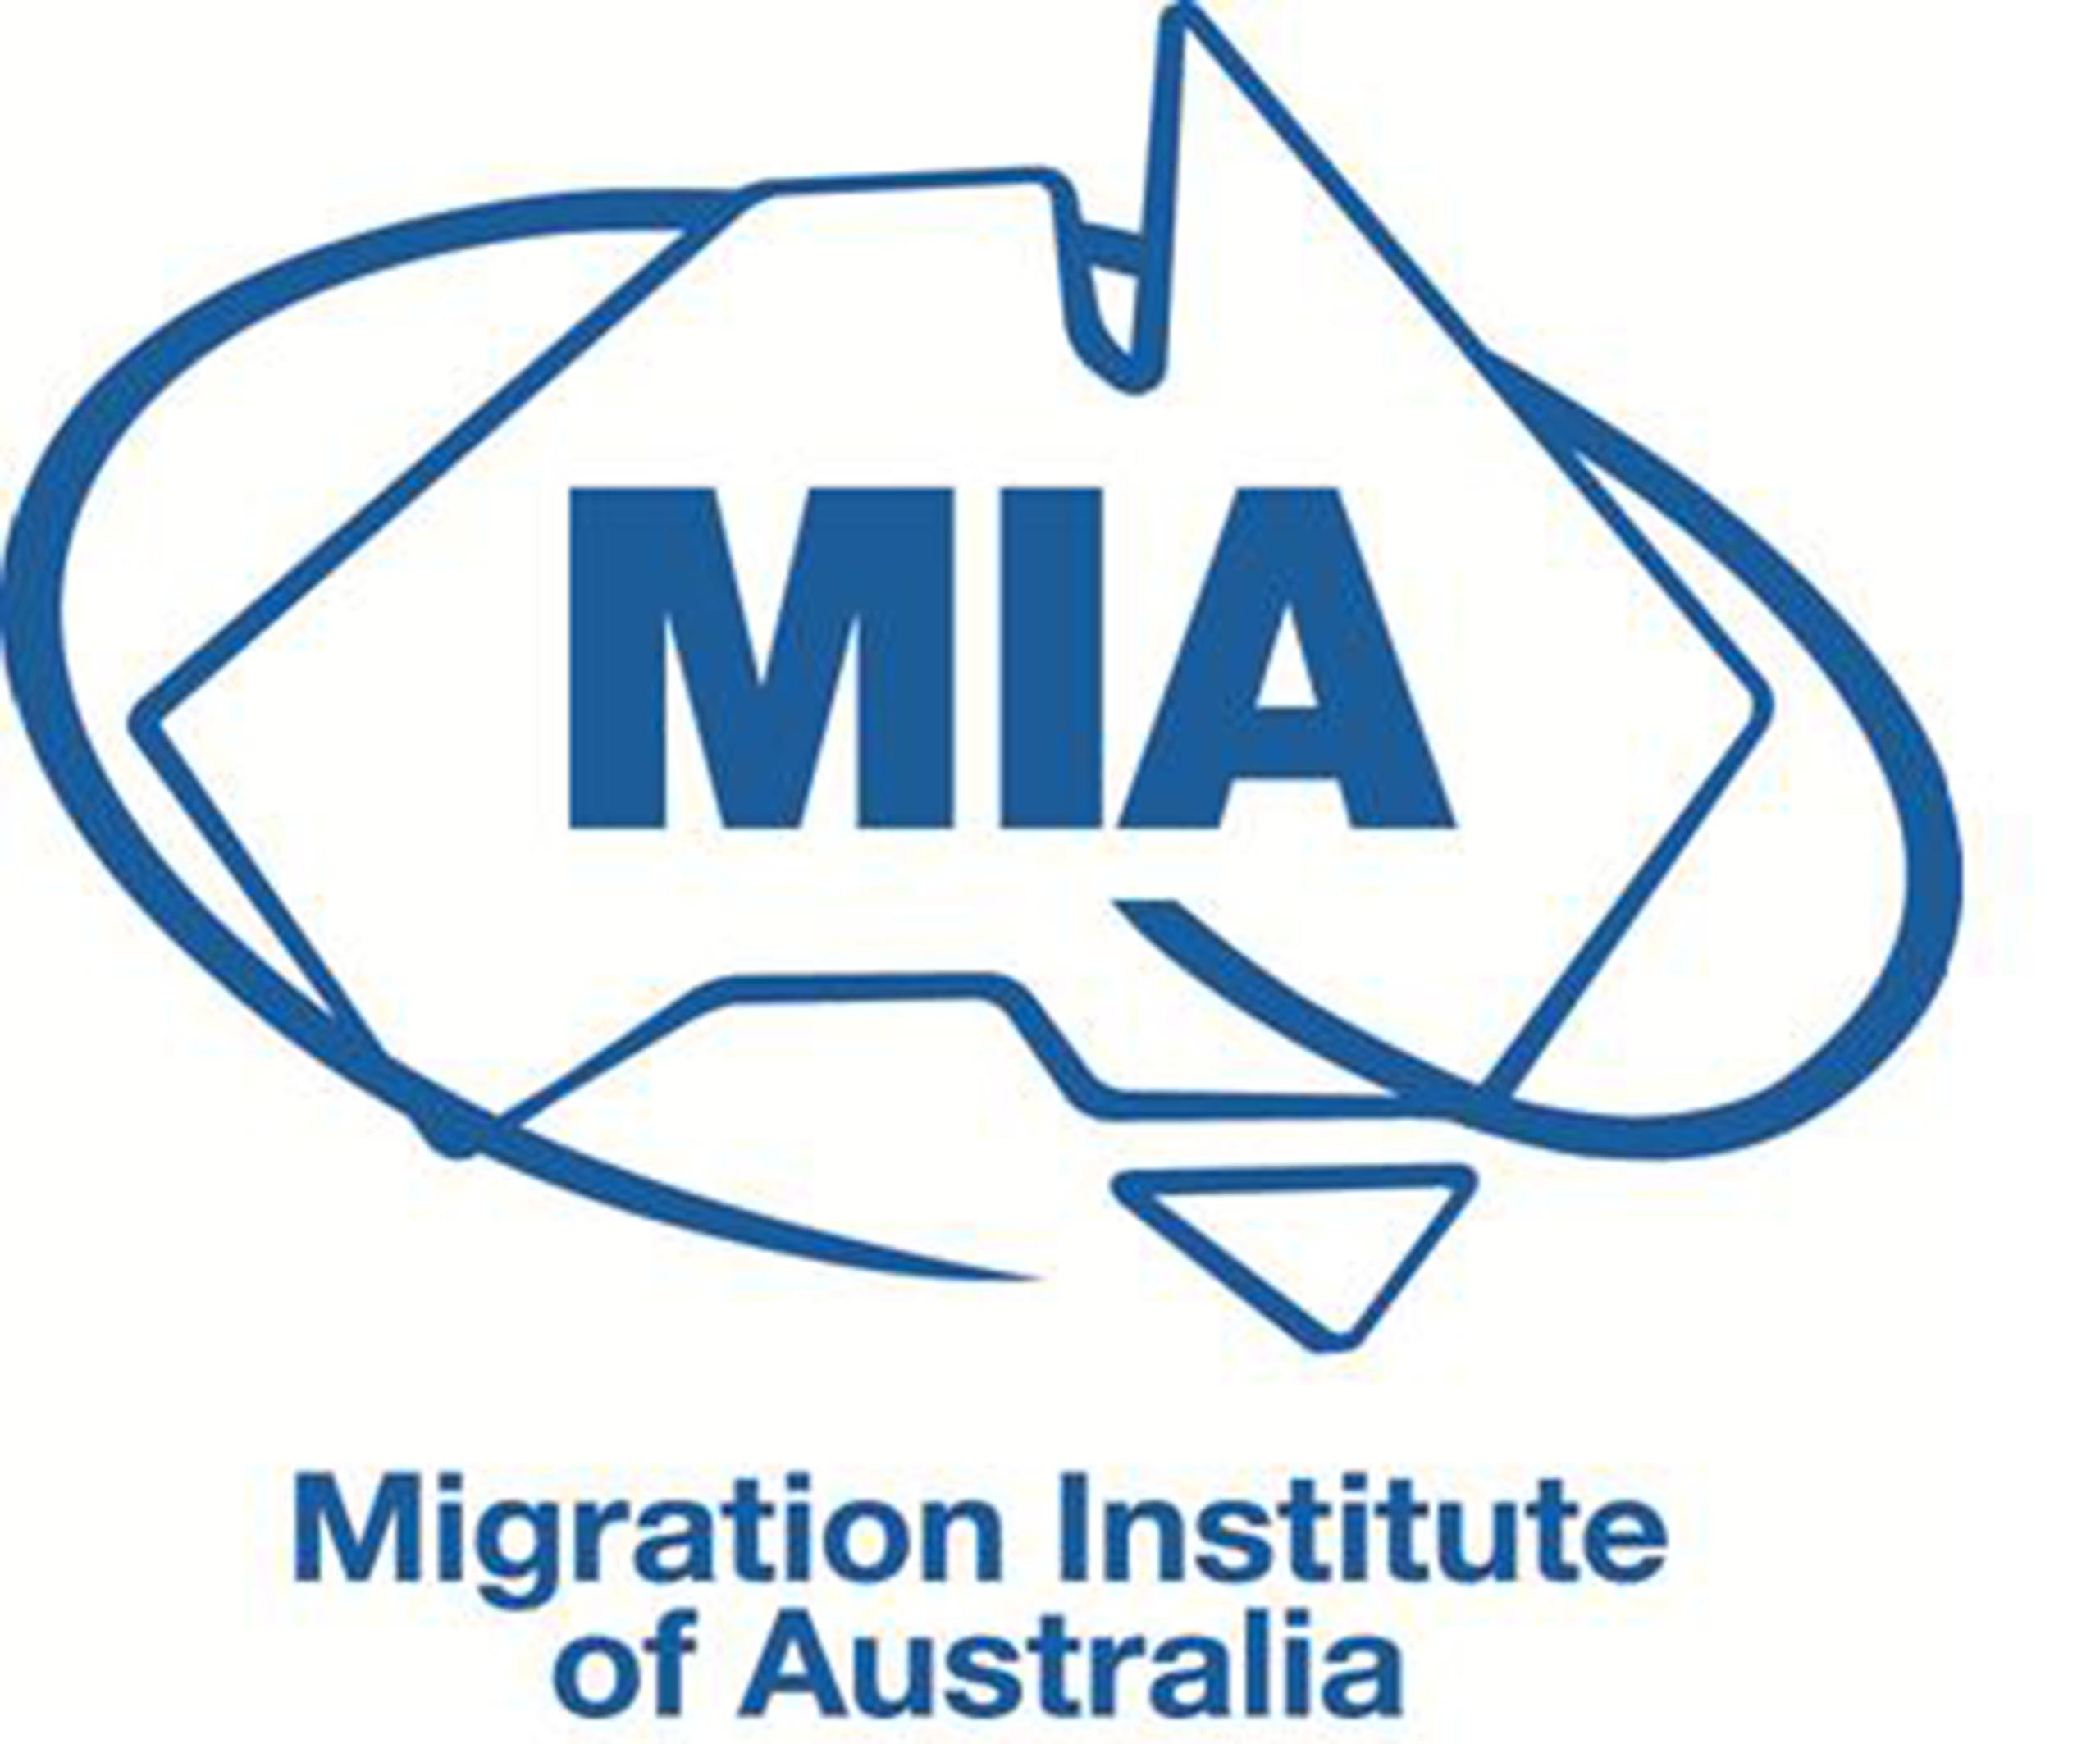 Housing Institute of Australia Logo photo - 1